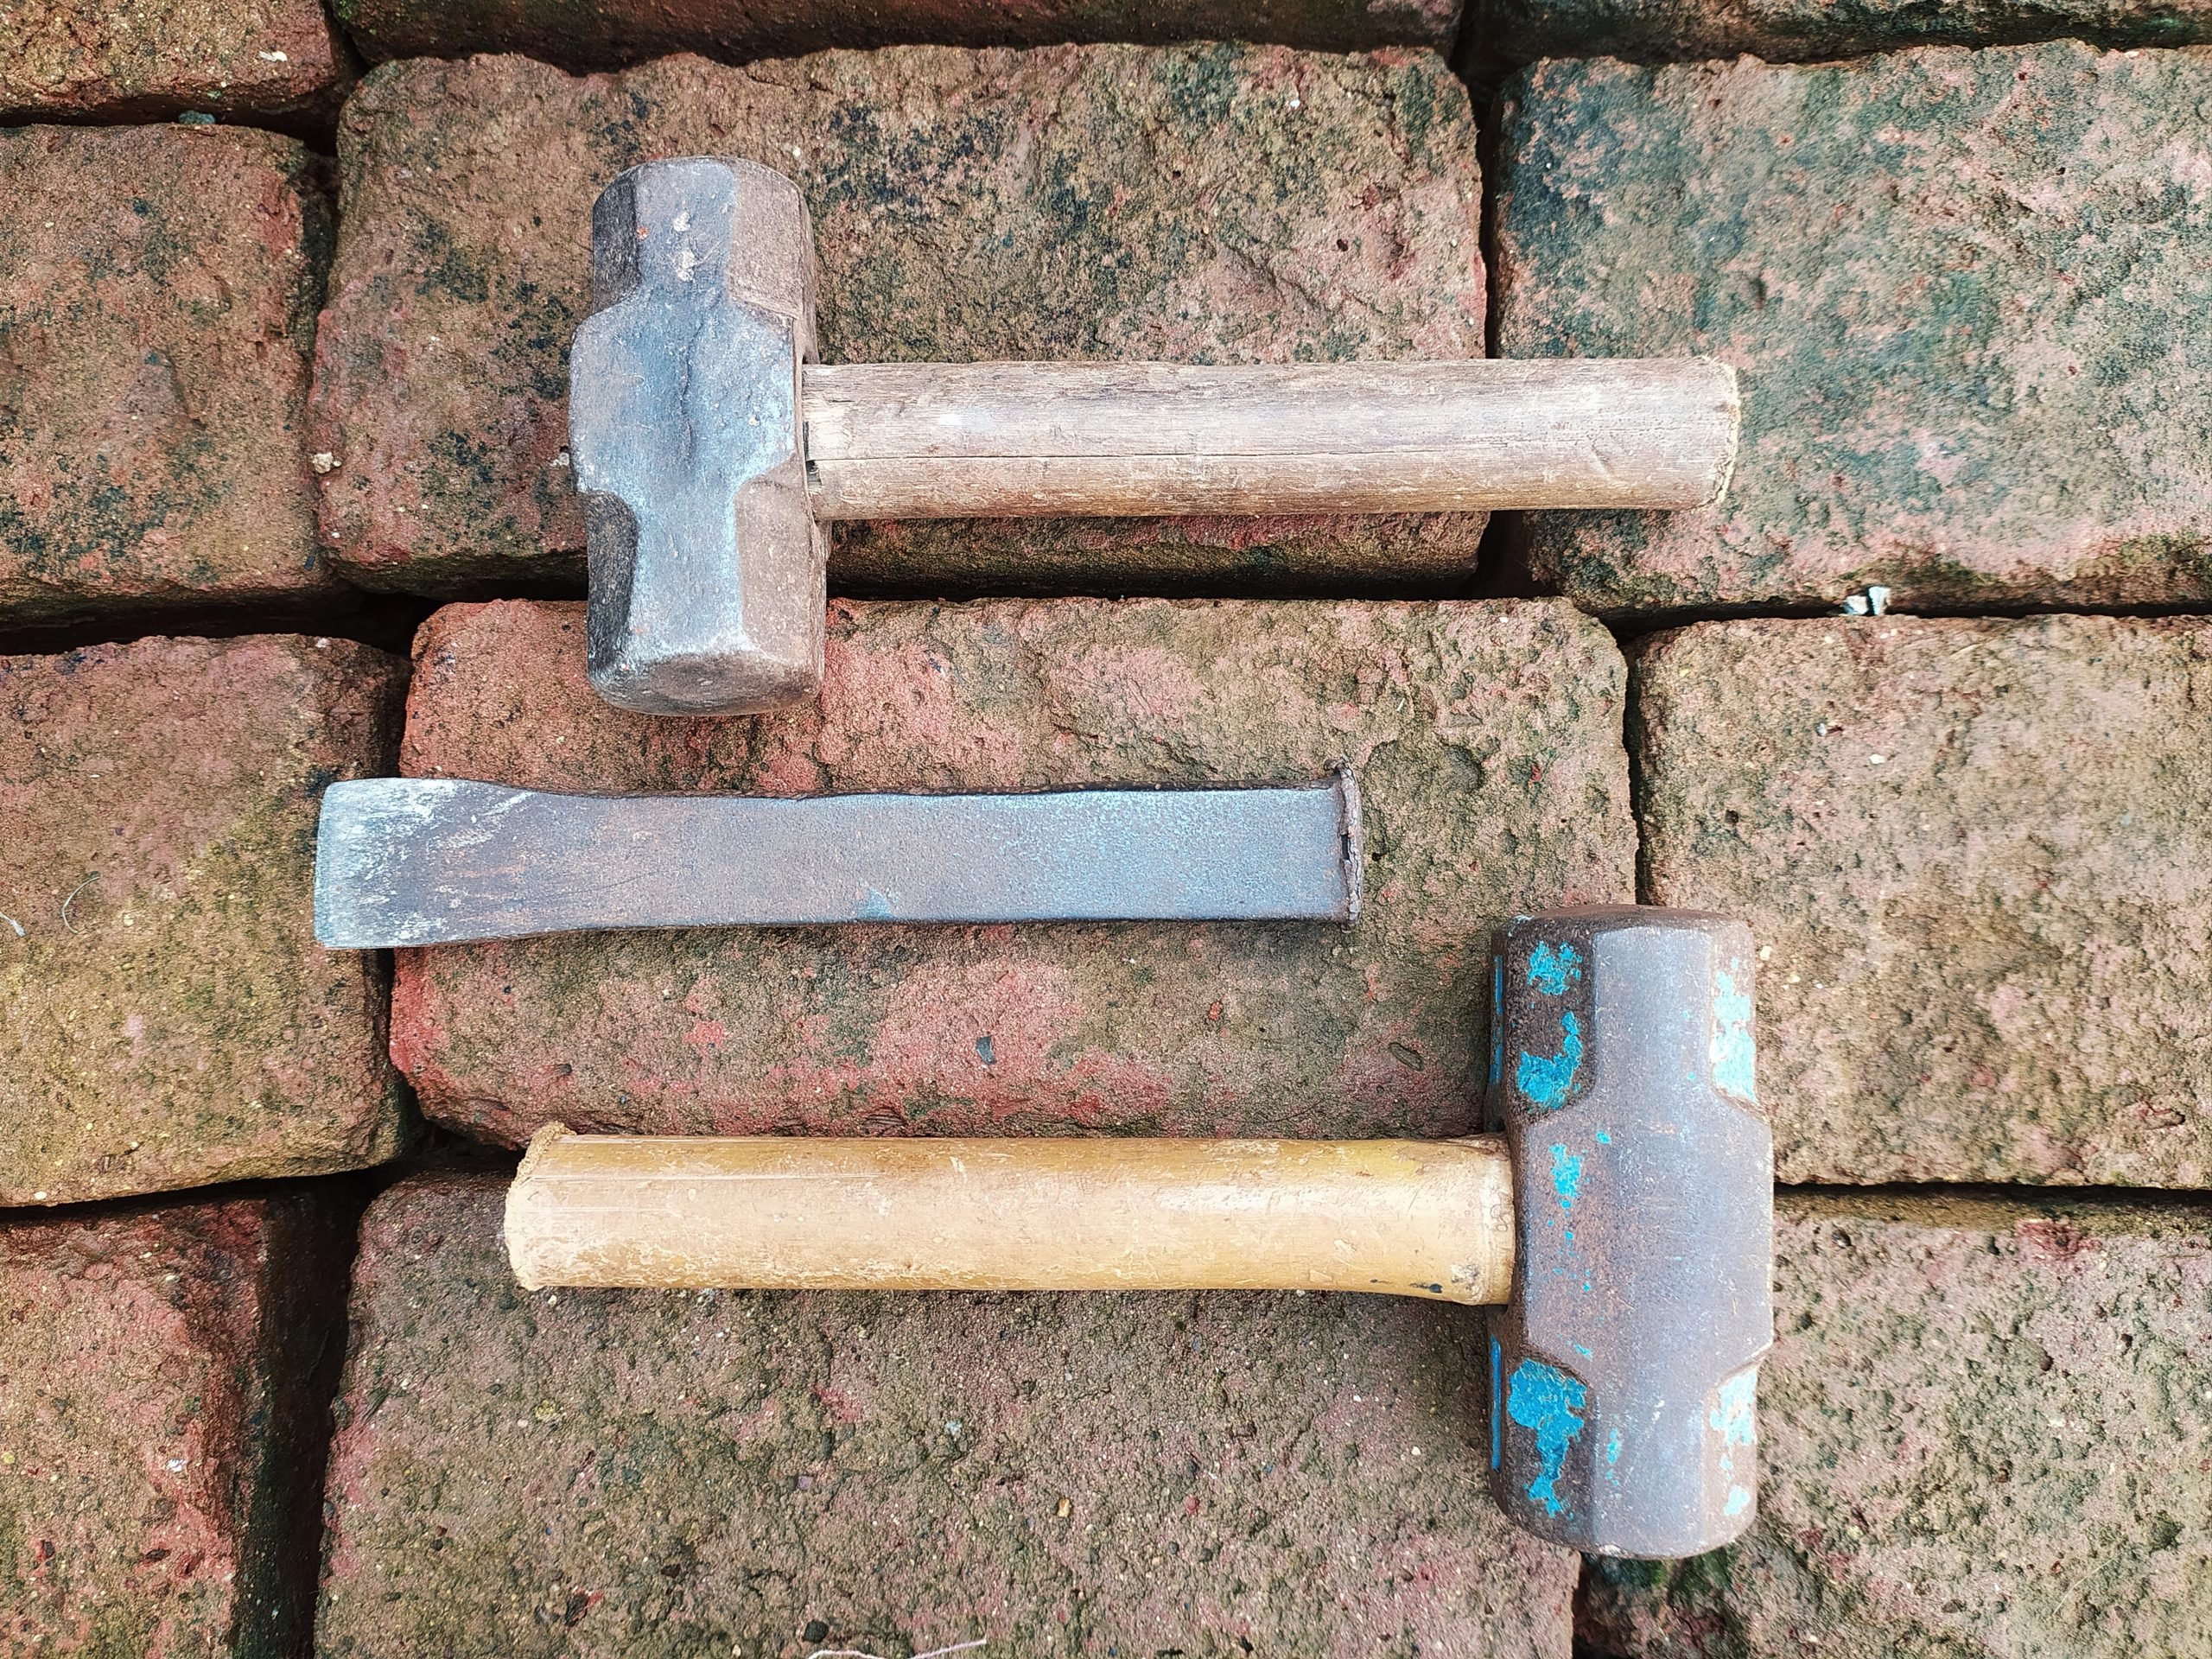 hammer and chisel tools